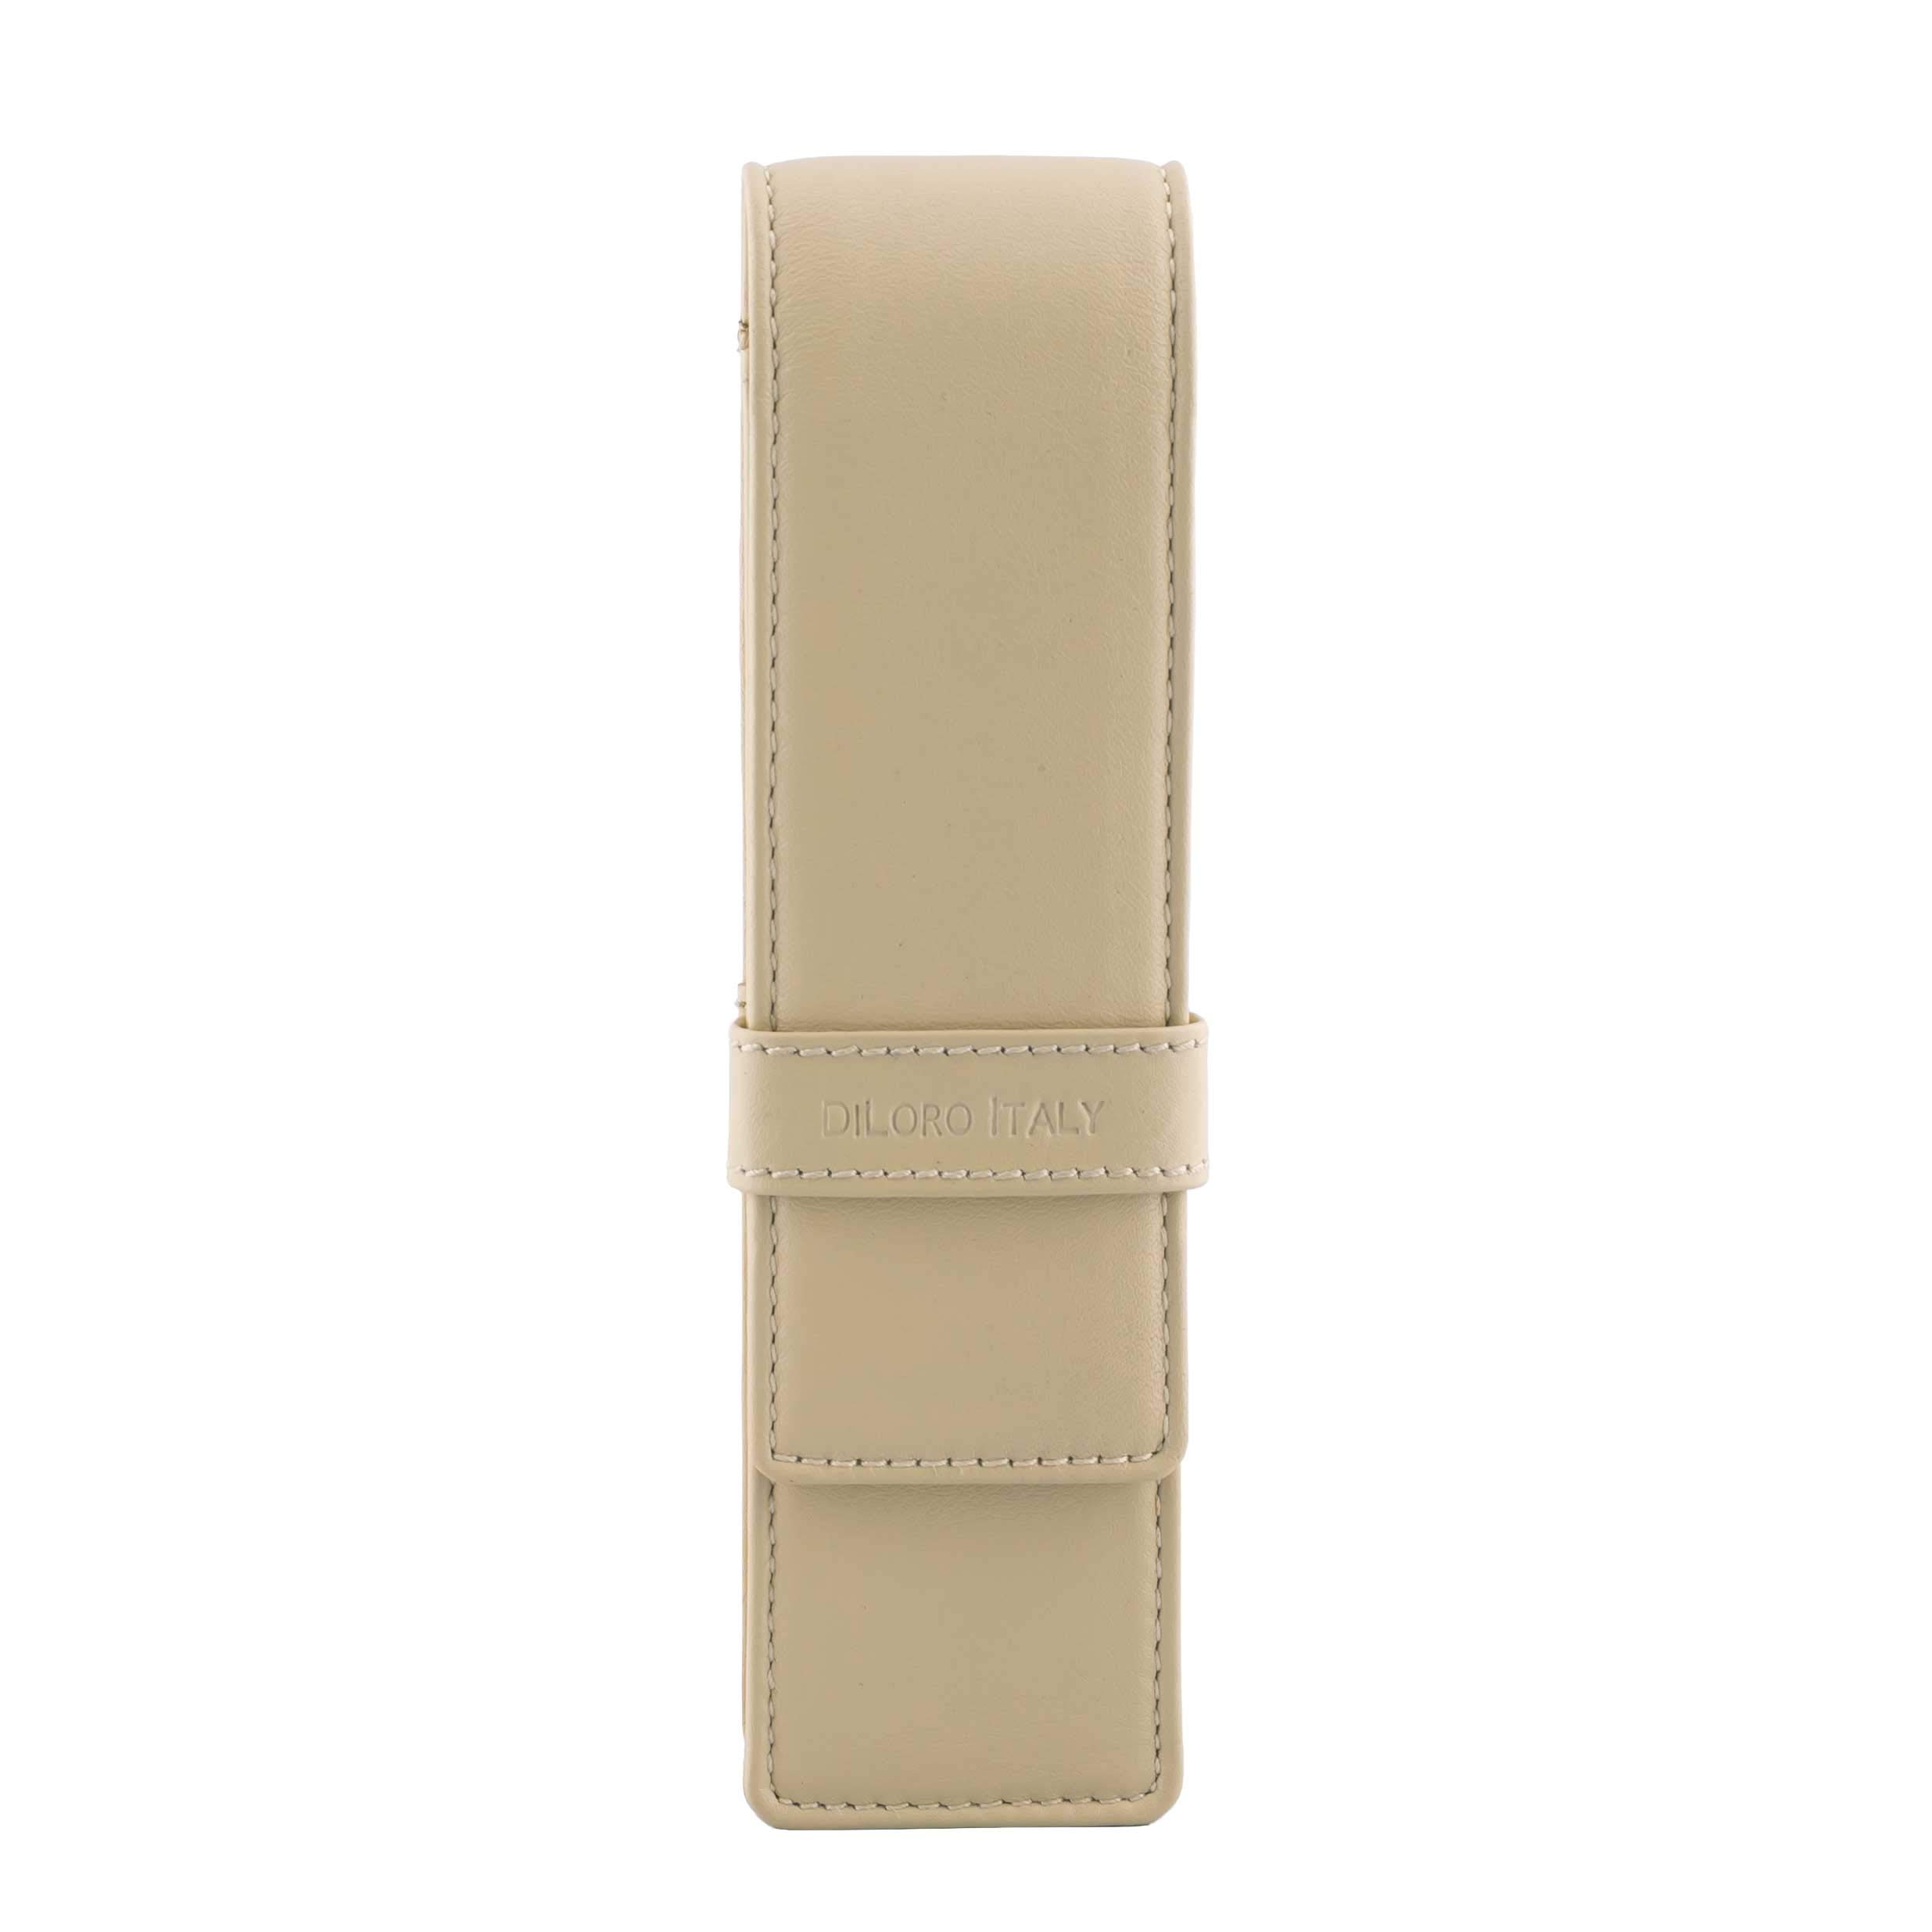 DiLoro Leather Pen Case Pouch Holder for Two Fountain Pens Ballpoint Rollerball Pen or Pencils (Beige)